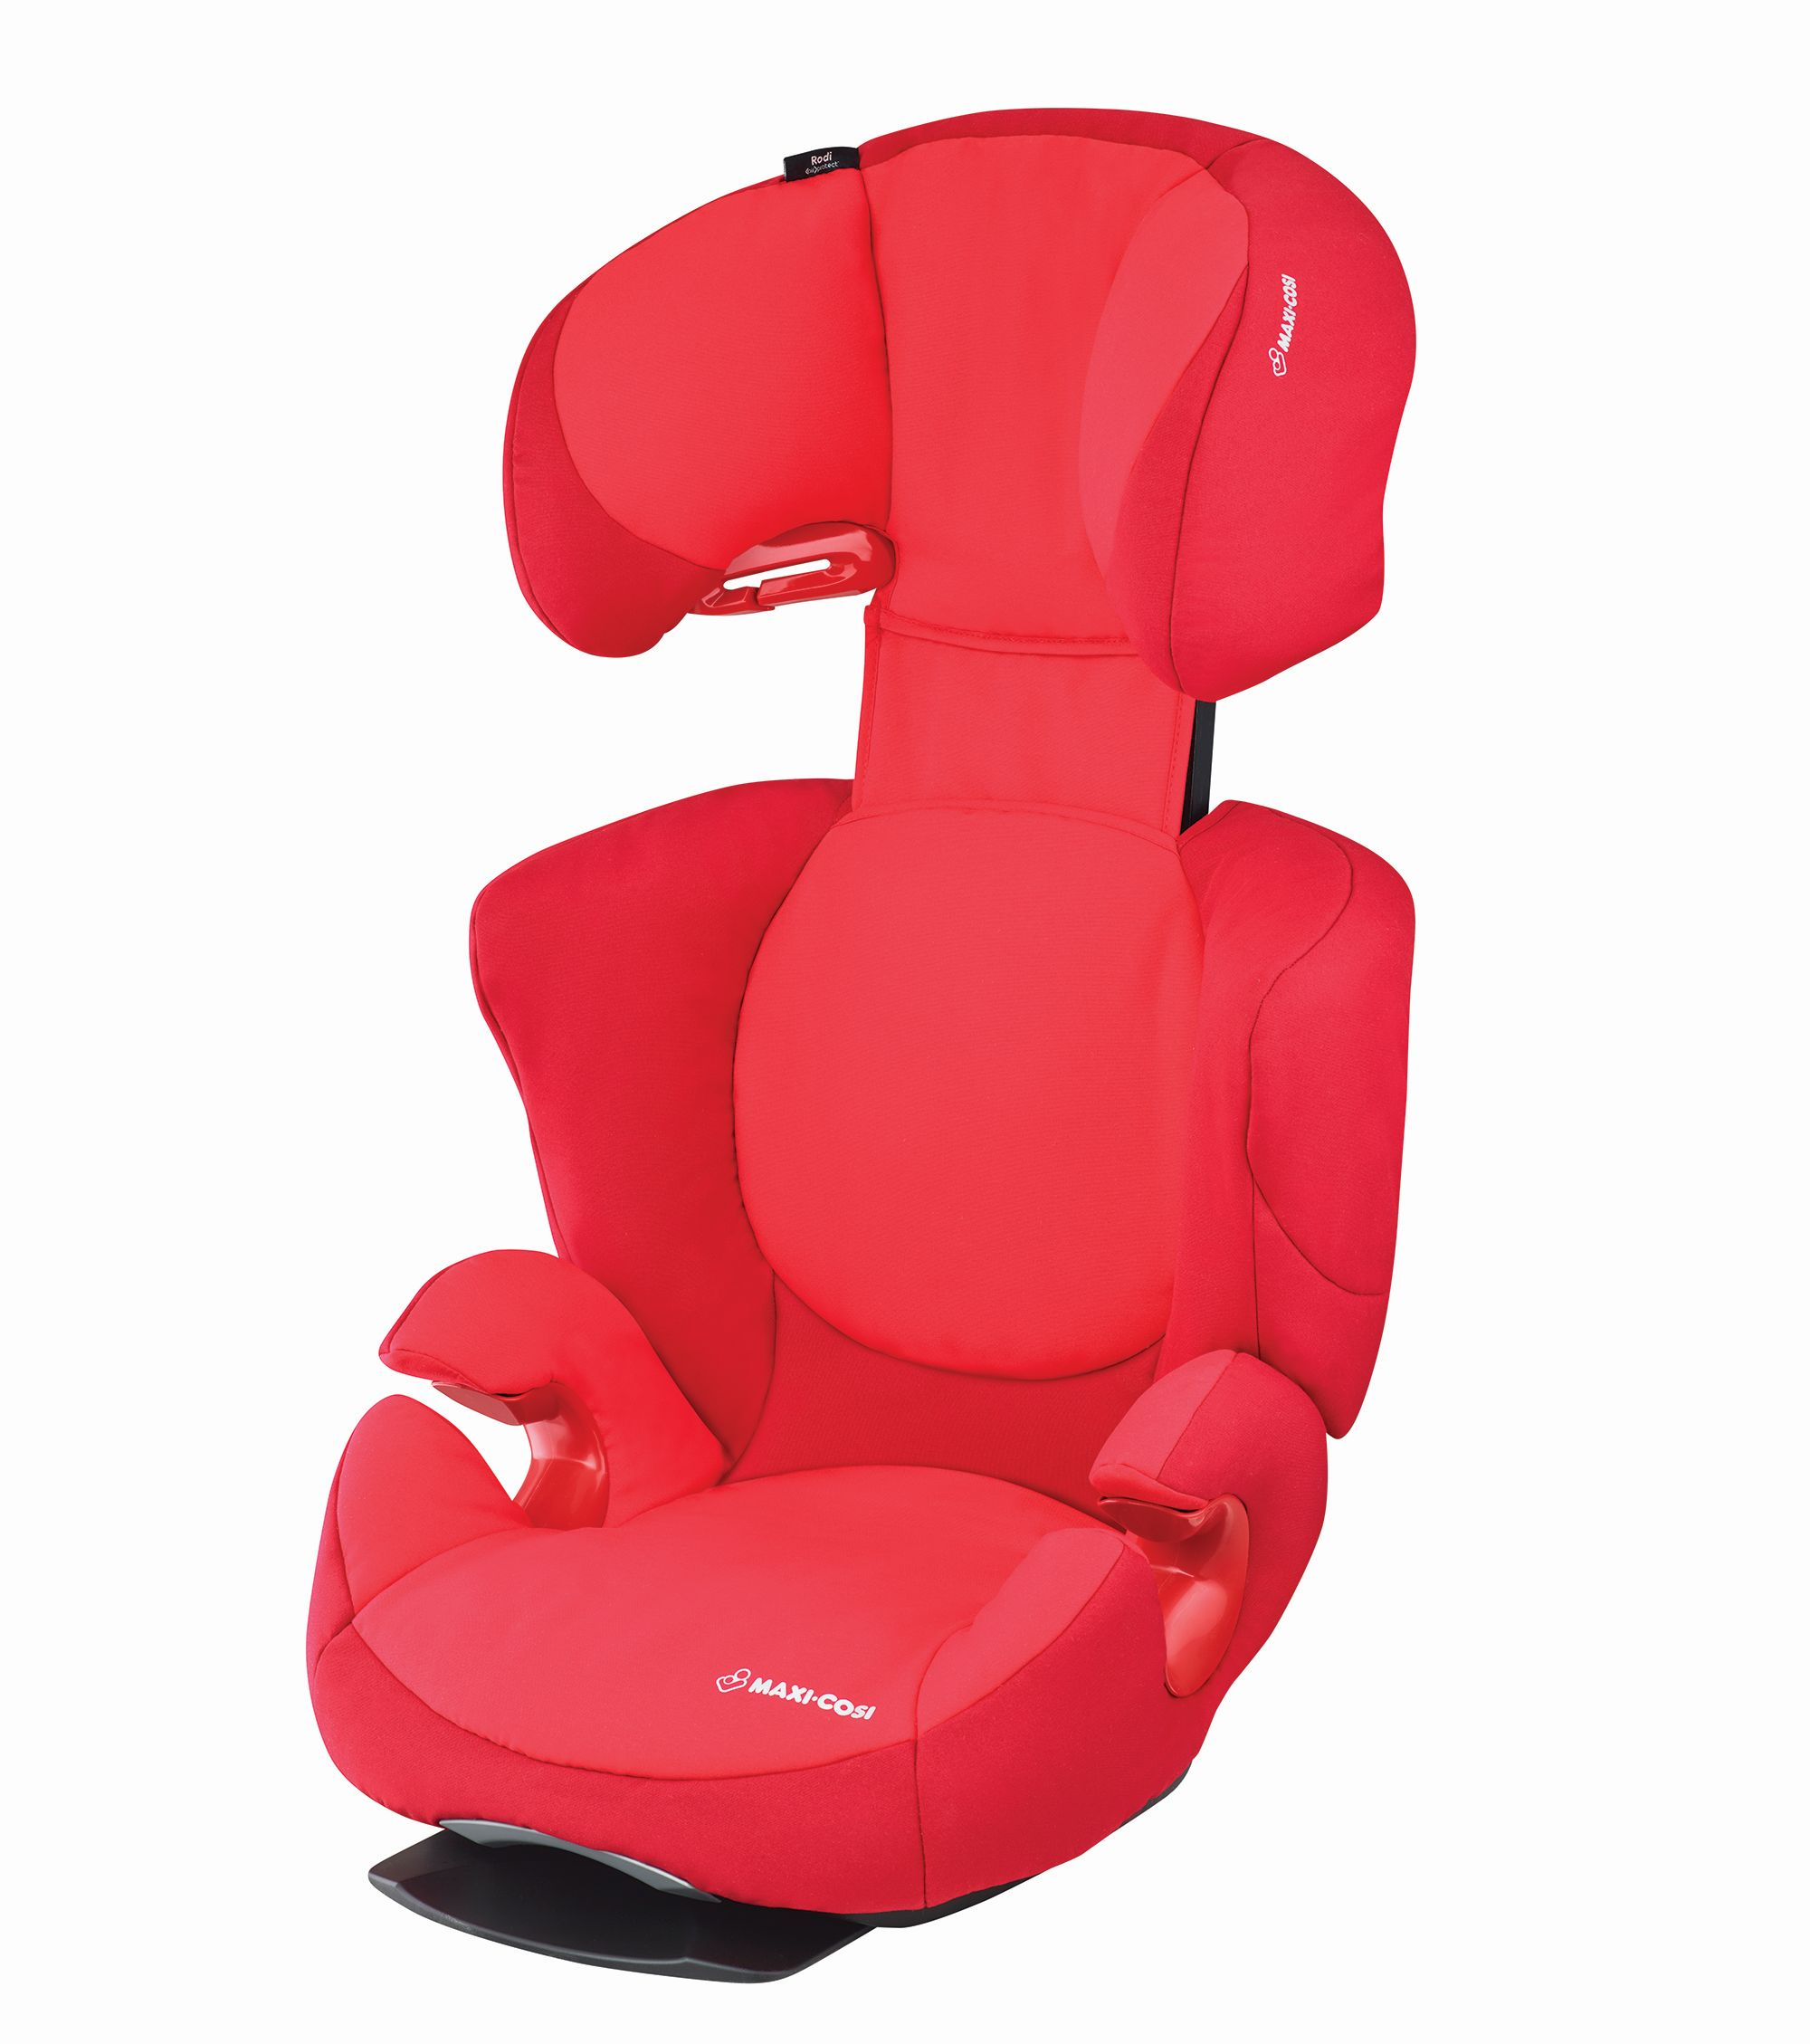 maxi cosi child car seat rodi air protect 2018 vivid red buy at kidsroom car seats. Black Bedroom Furniture Sets. Home Design Ideas